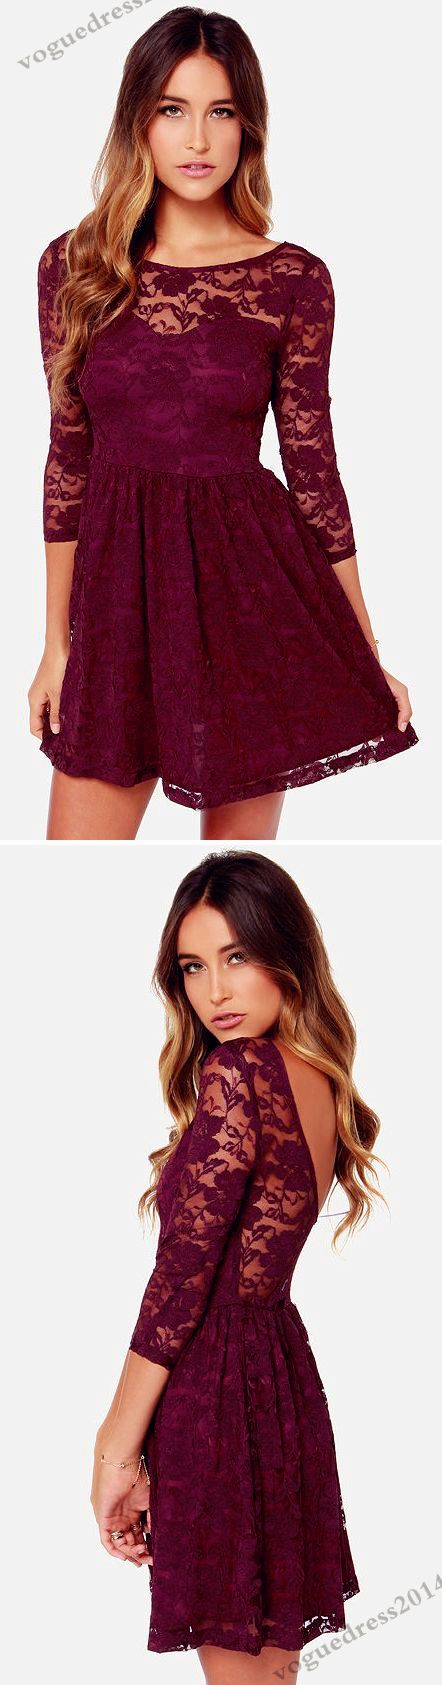 Our Song Burgundy Lace Dress